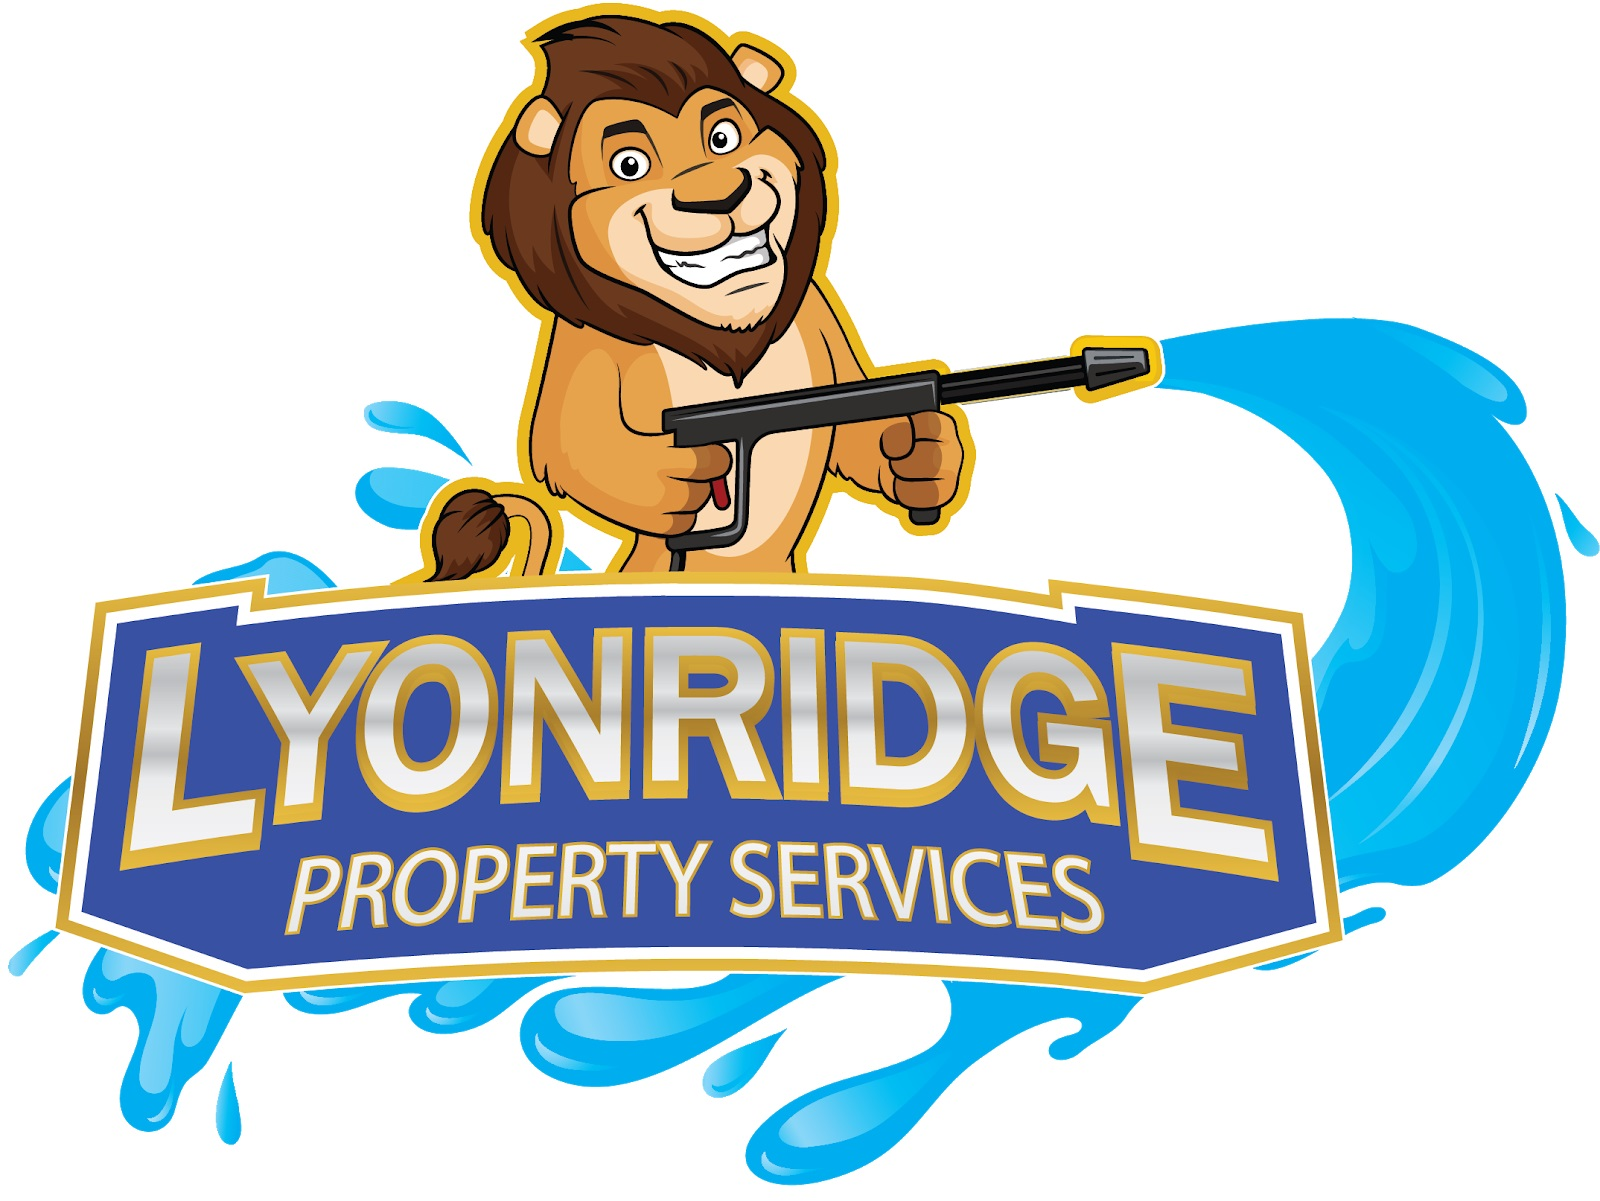 Lyonridge Property Service